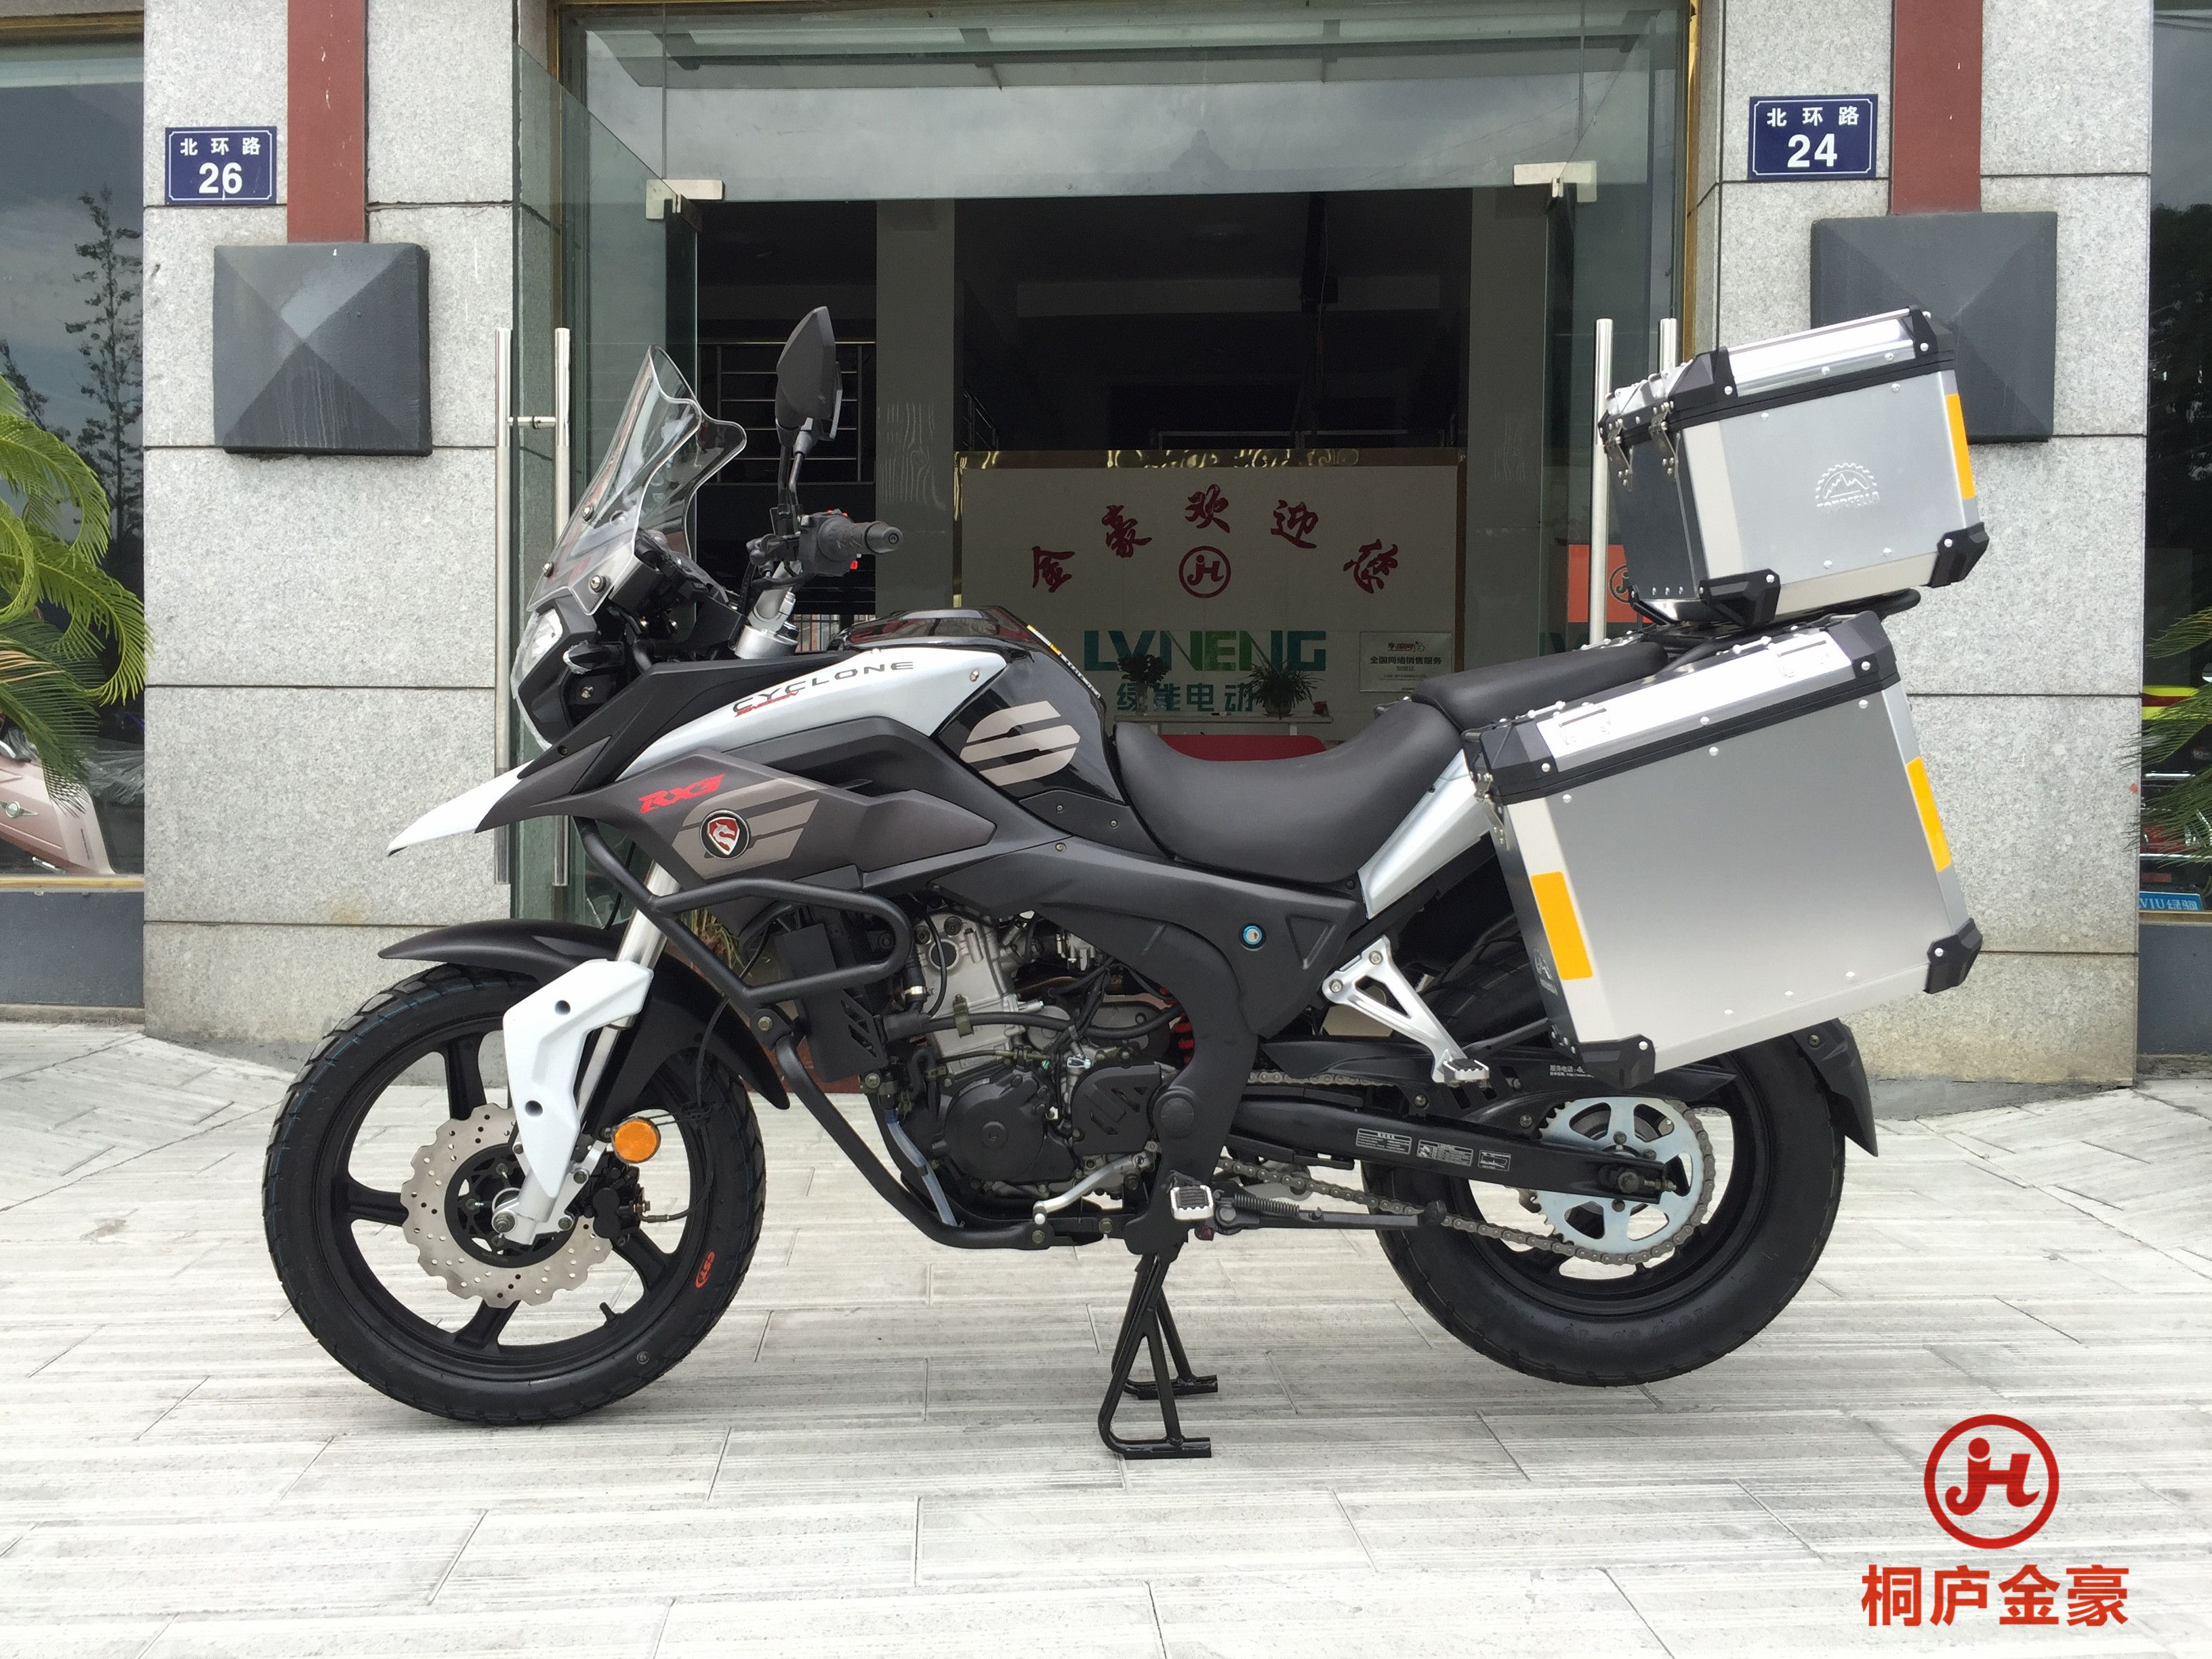 Usd 6166 43 Version 17 Zongshen Rx3 Ultimate Zs250gy 3 Nc250 Water Cooled Motorcycle Available On Boa Motorcycle China Shopping Online Motorcycle Equipment